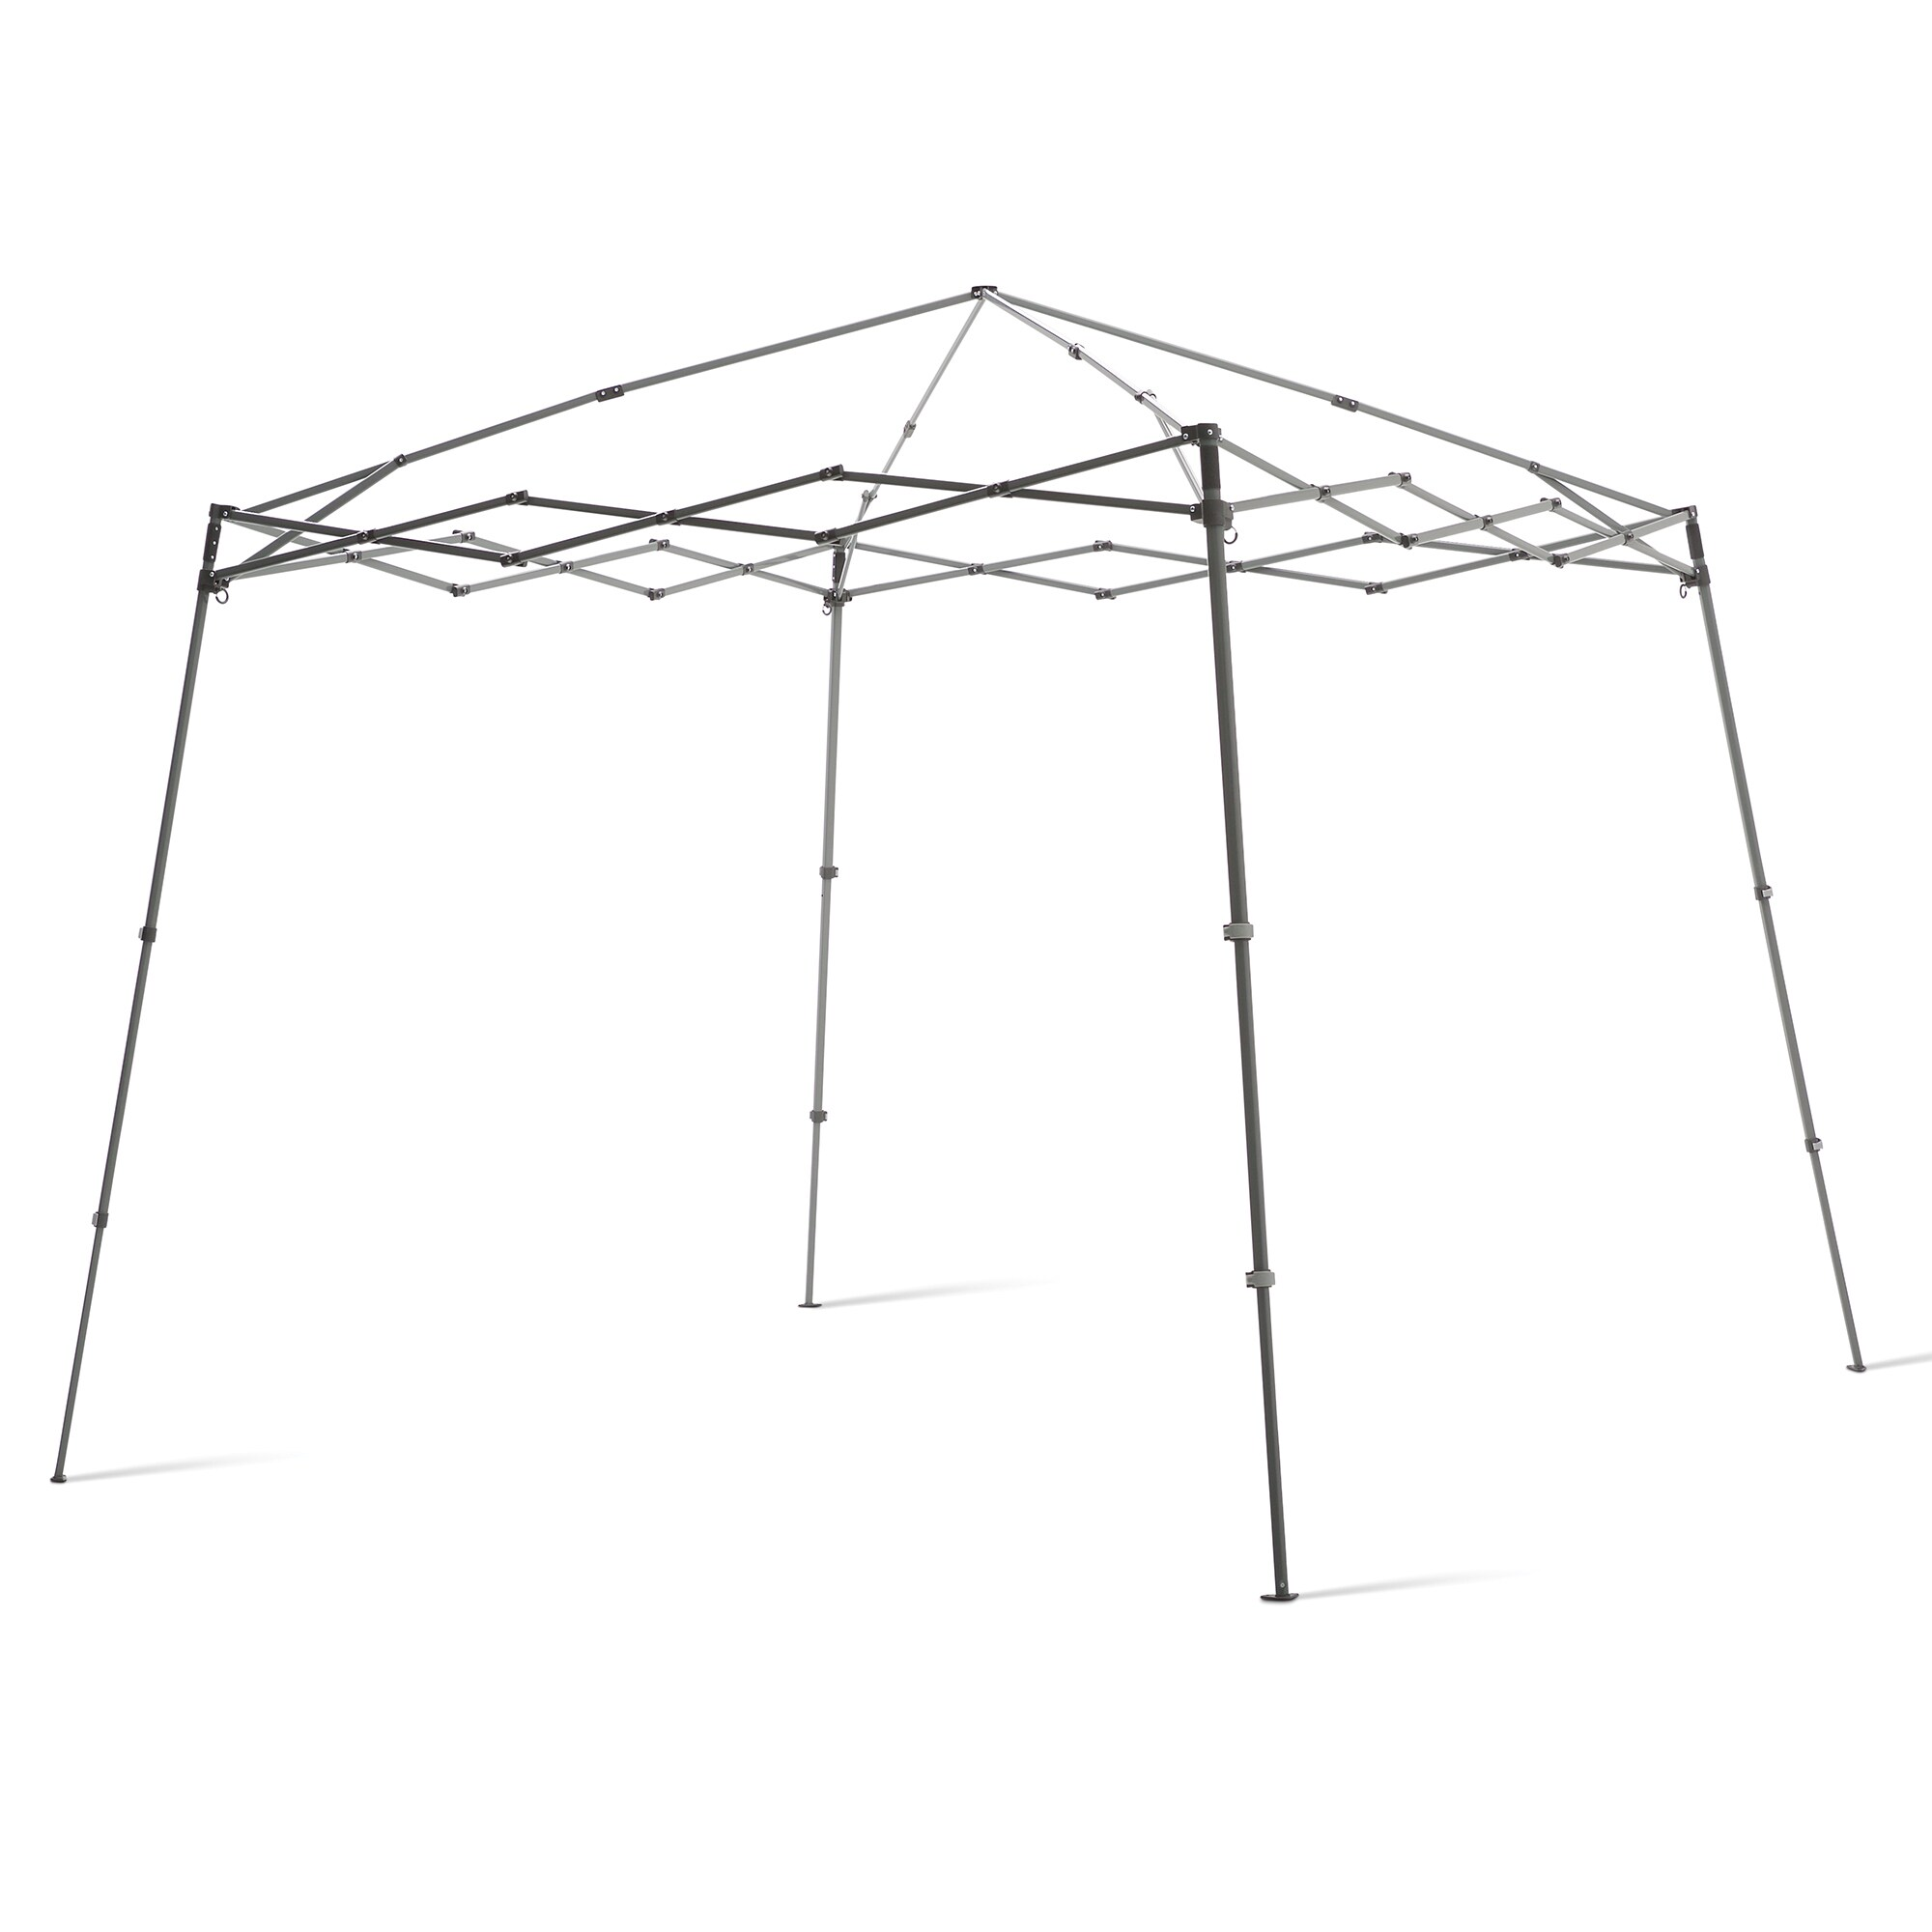 Quik Shade Solo Steel 50 Compact Instant Canopy - Free Shipping Today - Overstock.com - 20800467  sc 1 st  Overstock & Quik Shade Solo Steel 50 Compact Instant Canopy - Free Shipping ...